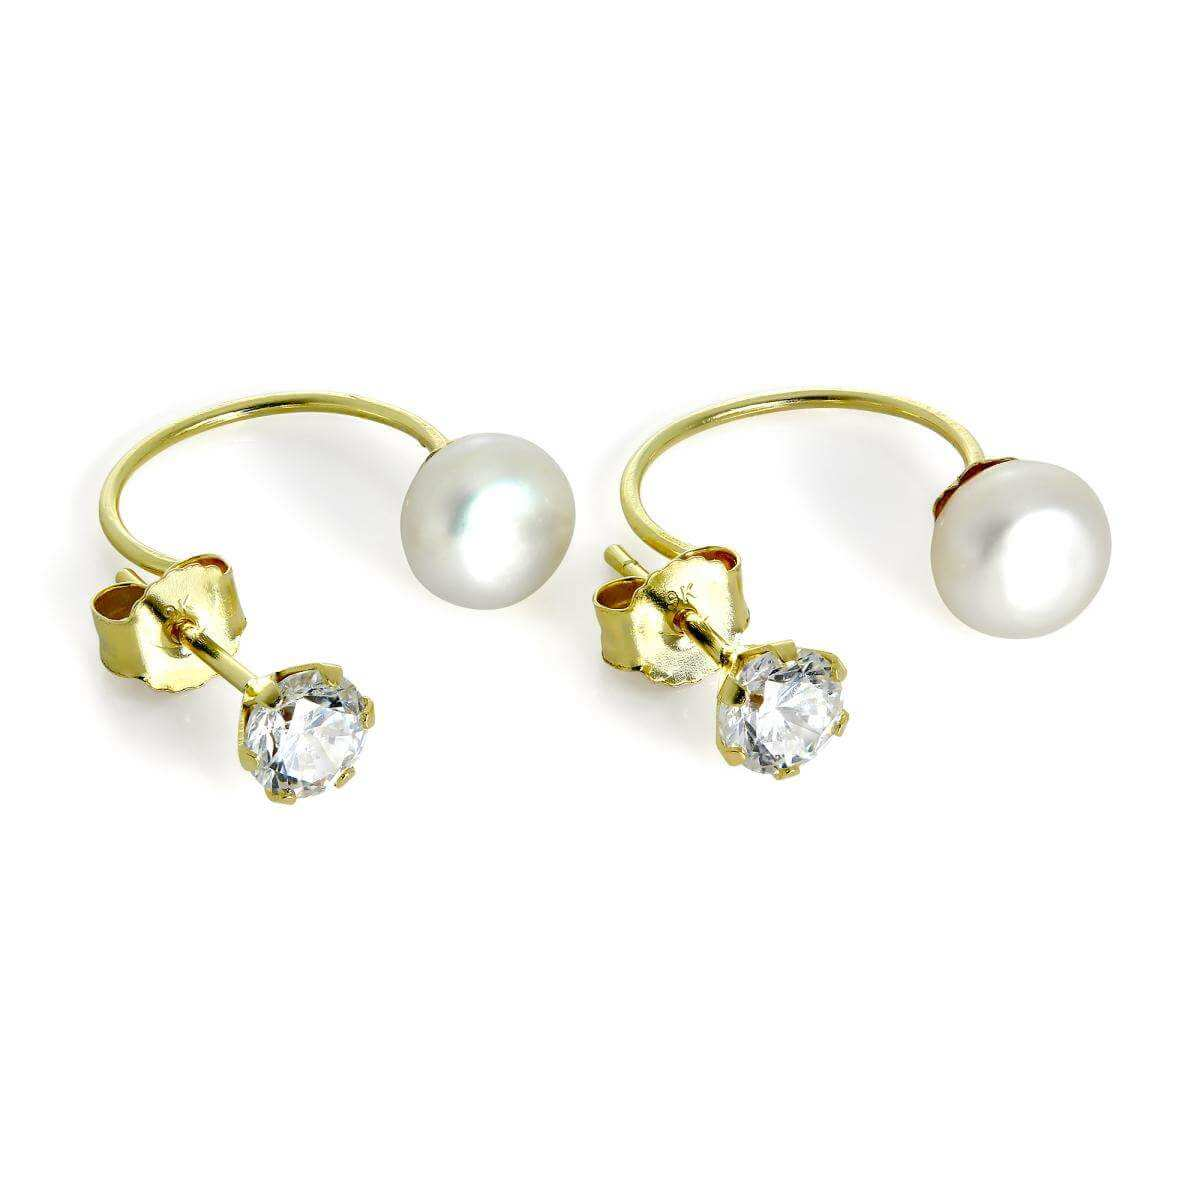 9ct Gold 4mm Round CZ Crystal & 6mm Freshwater Pearl Double Side Stud Earrings